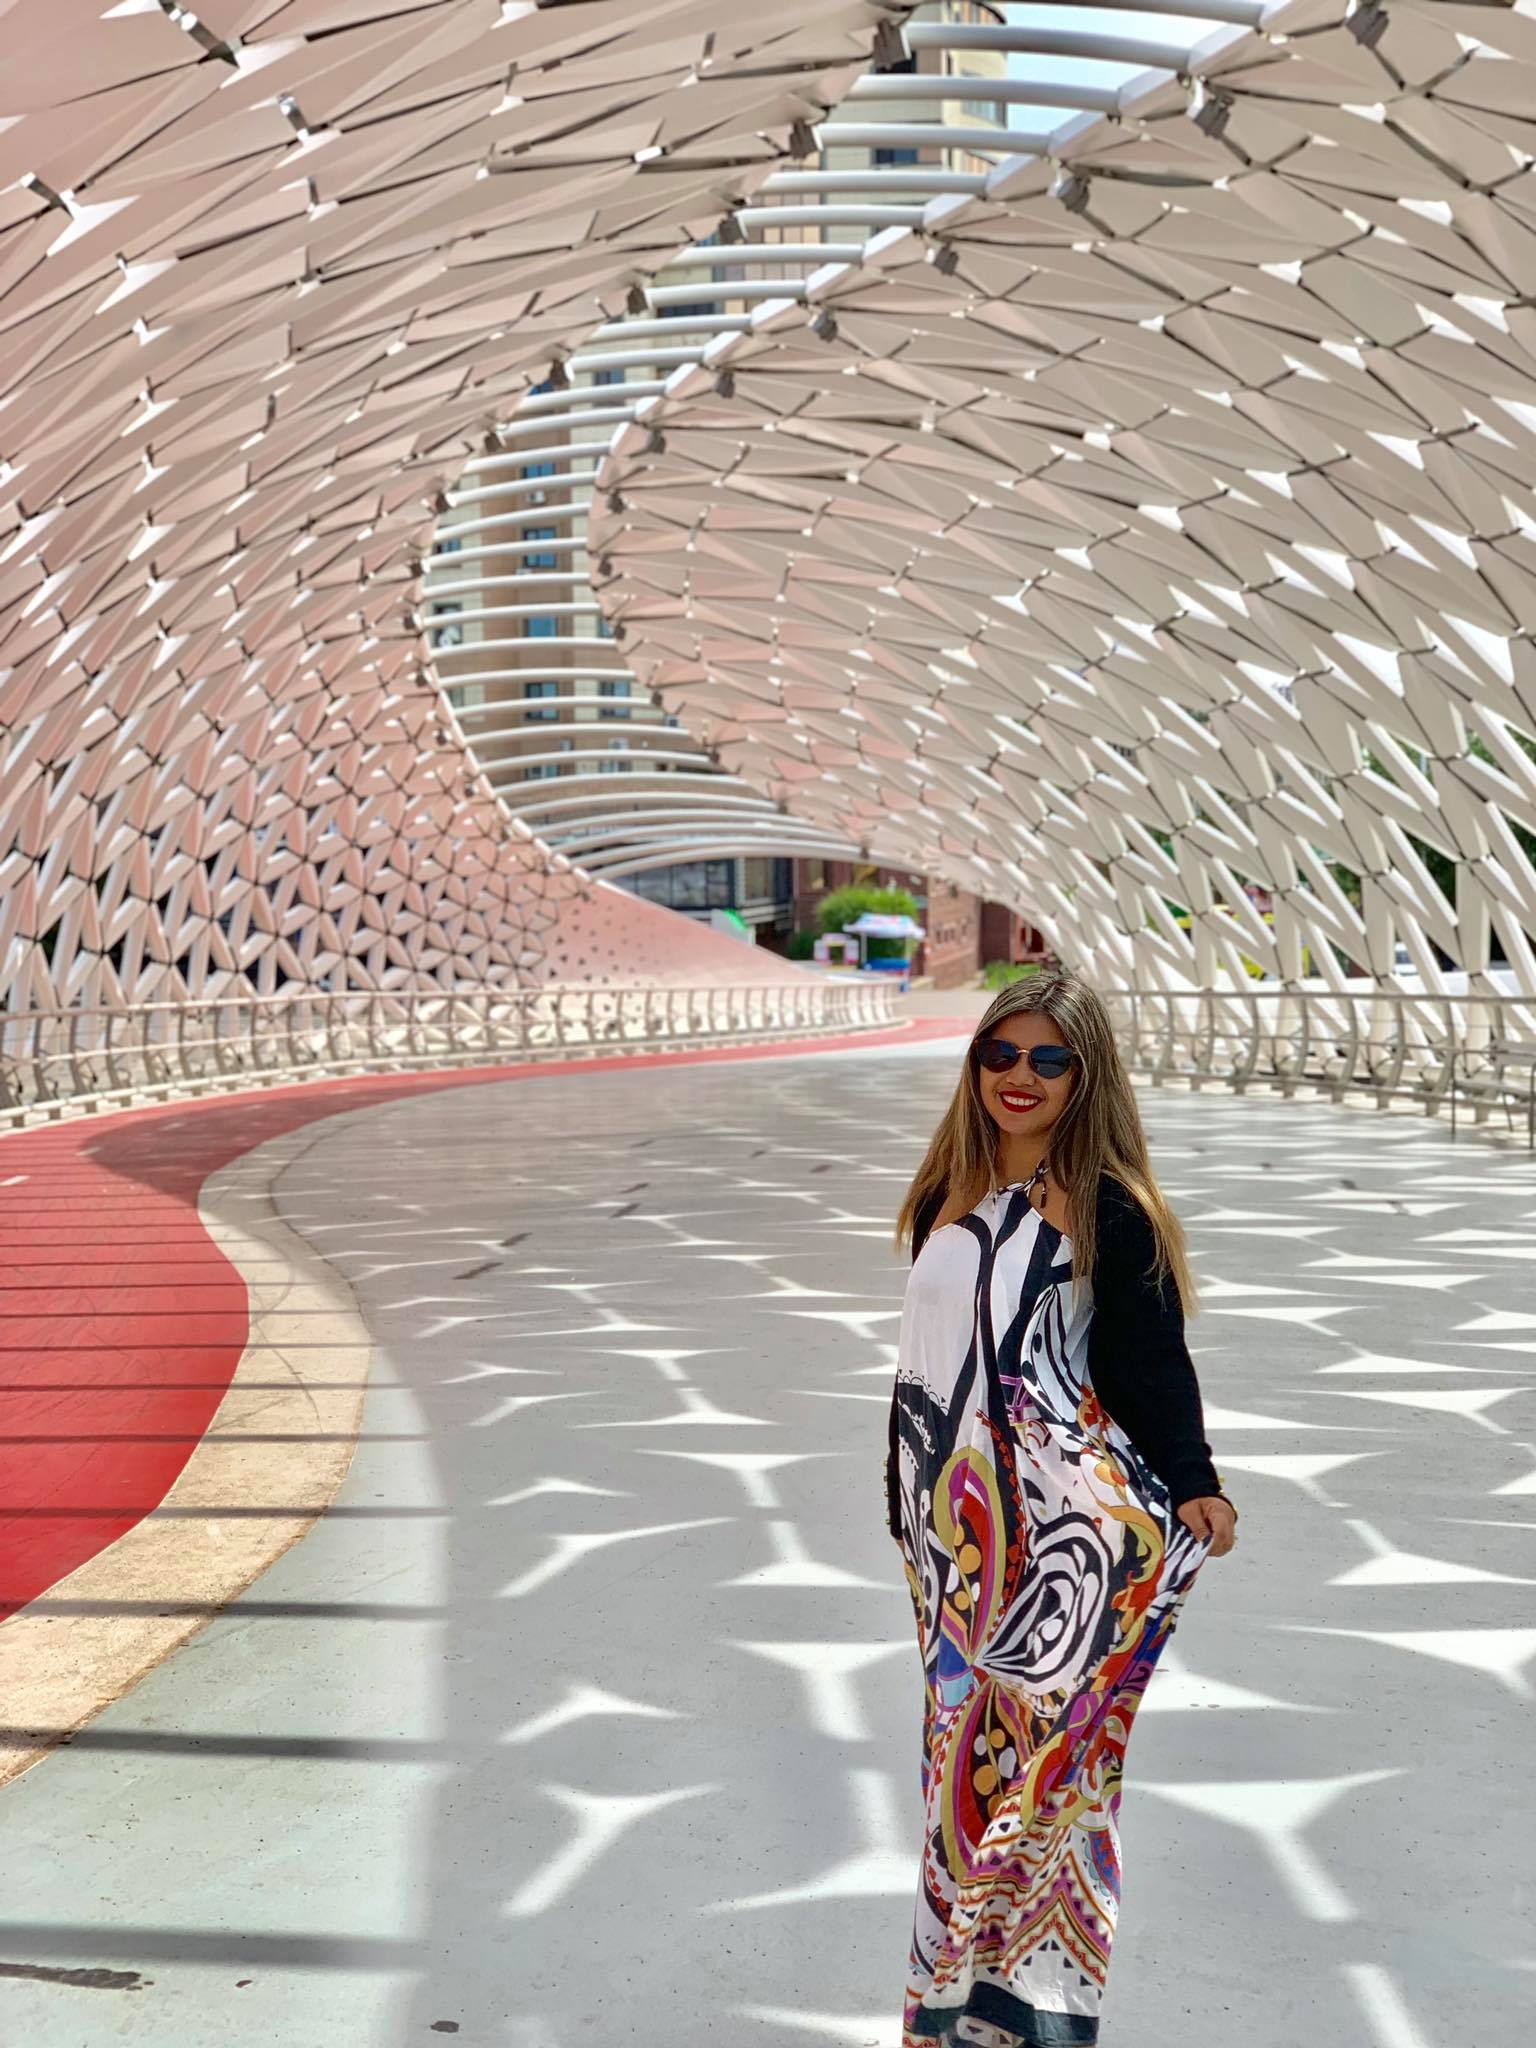 Kach Solo Travels in 2019 Nursultan  Astana - the City of the Future10.jpg